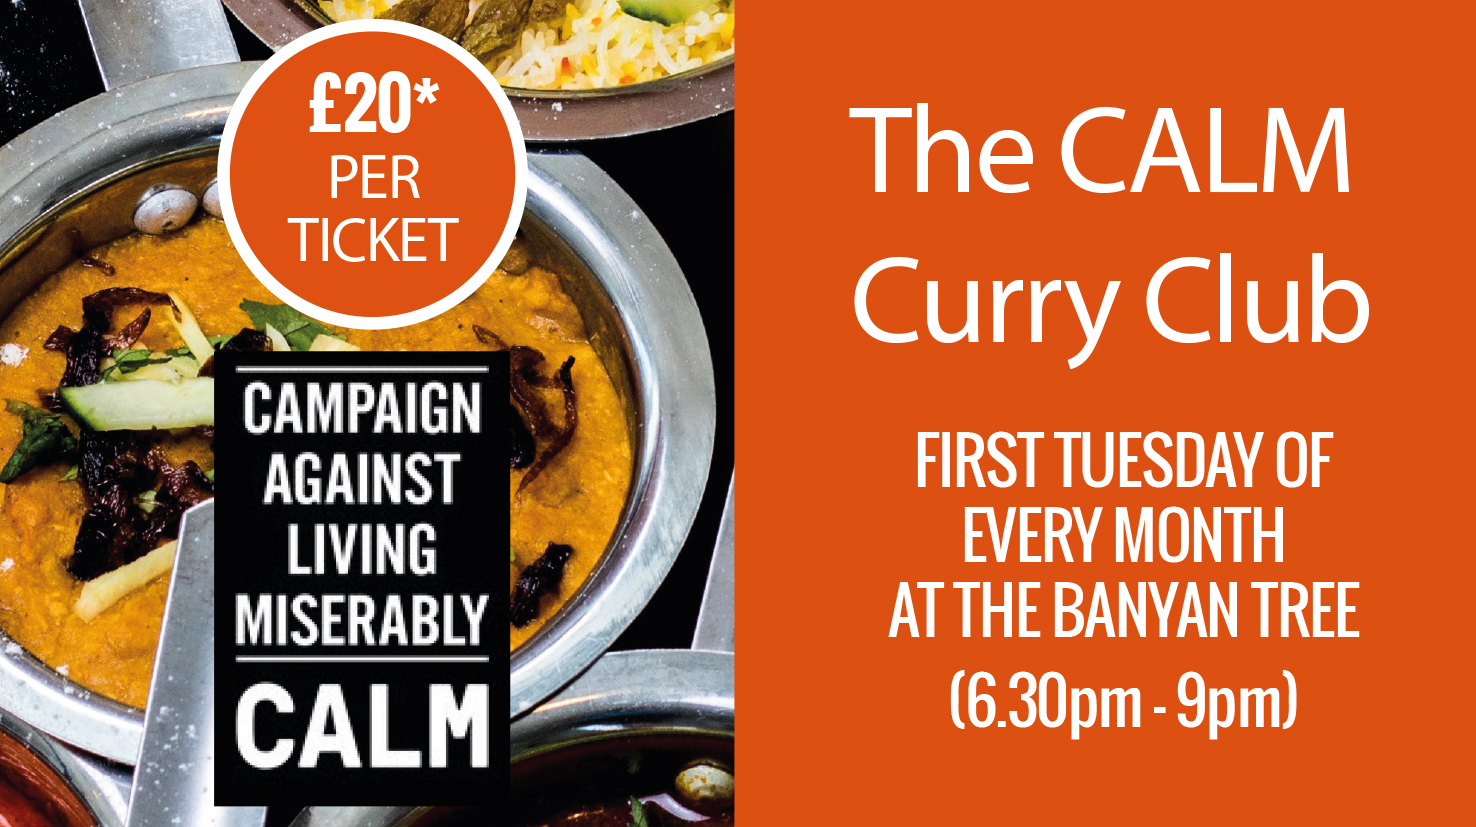 The CALM Curry Club in Peterborough Every Month